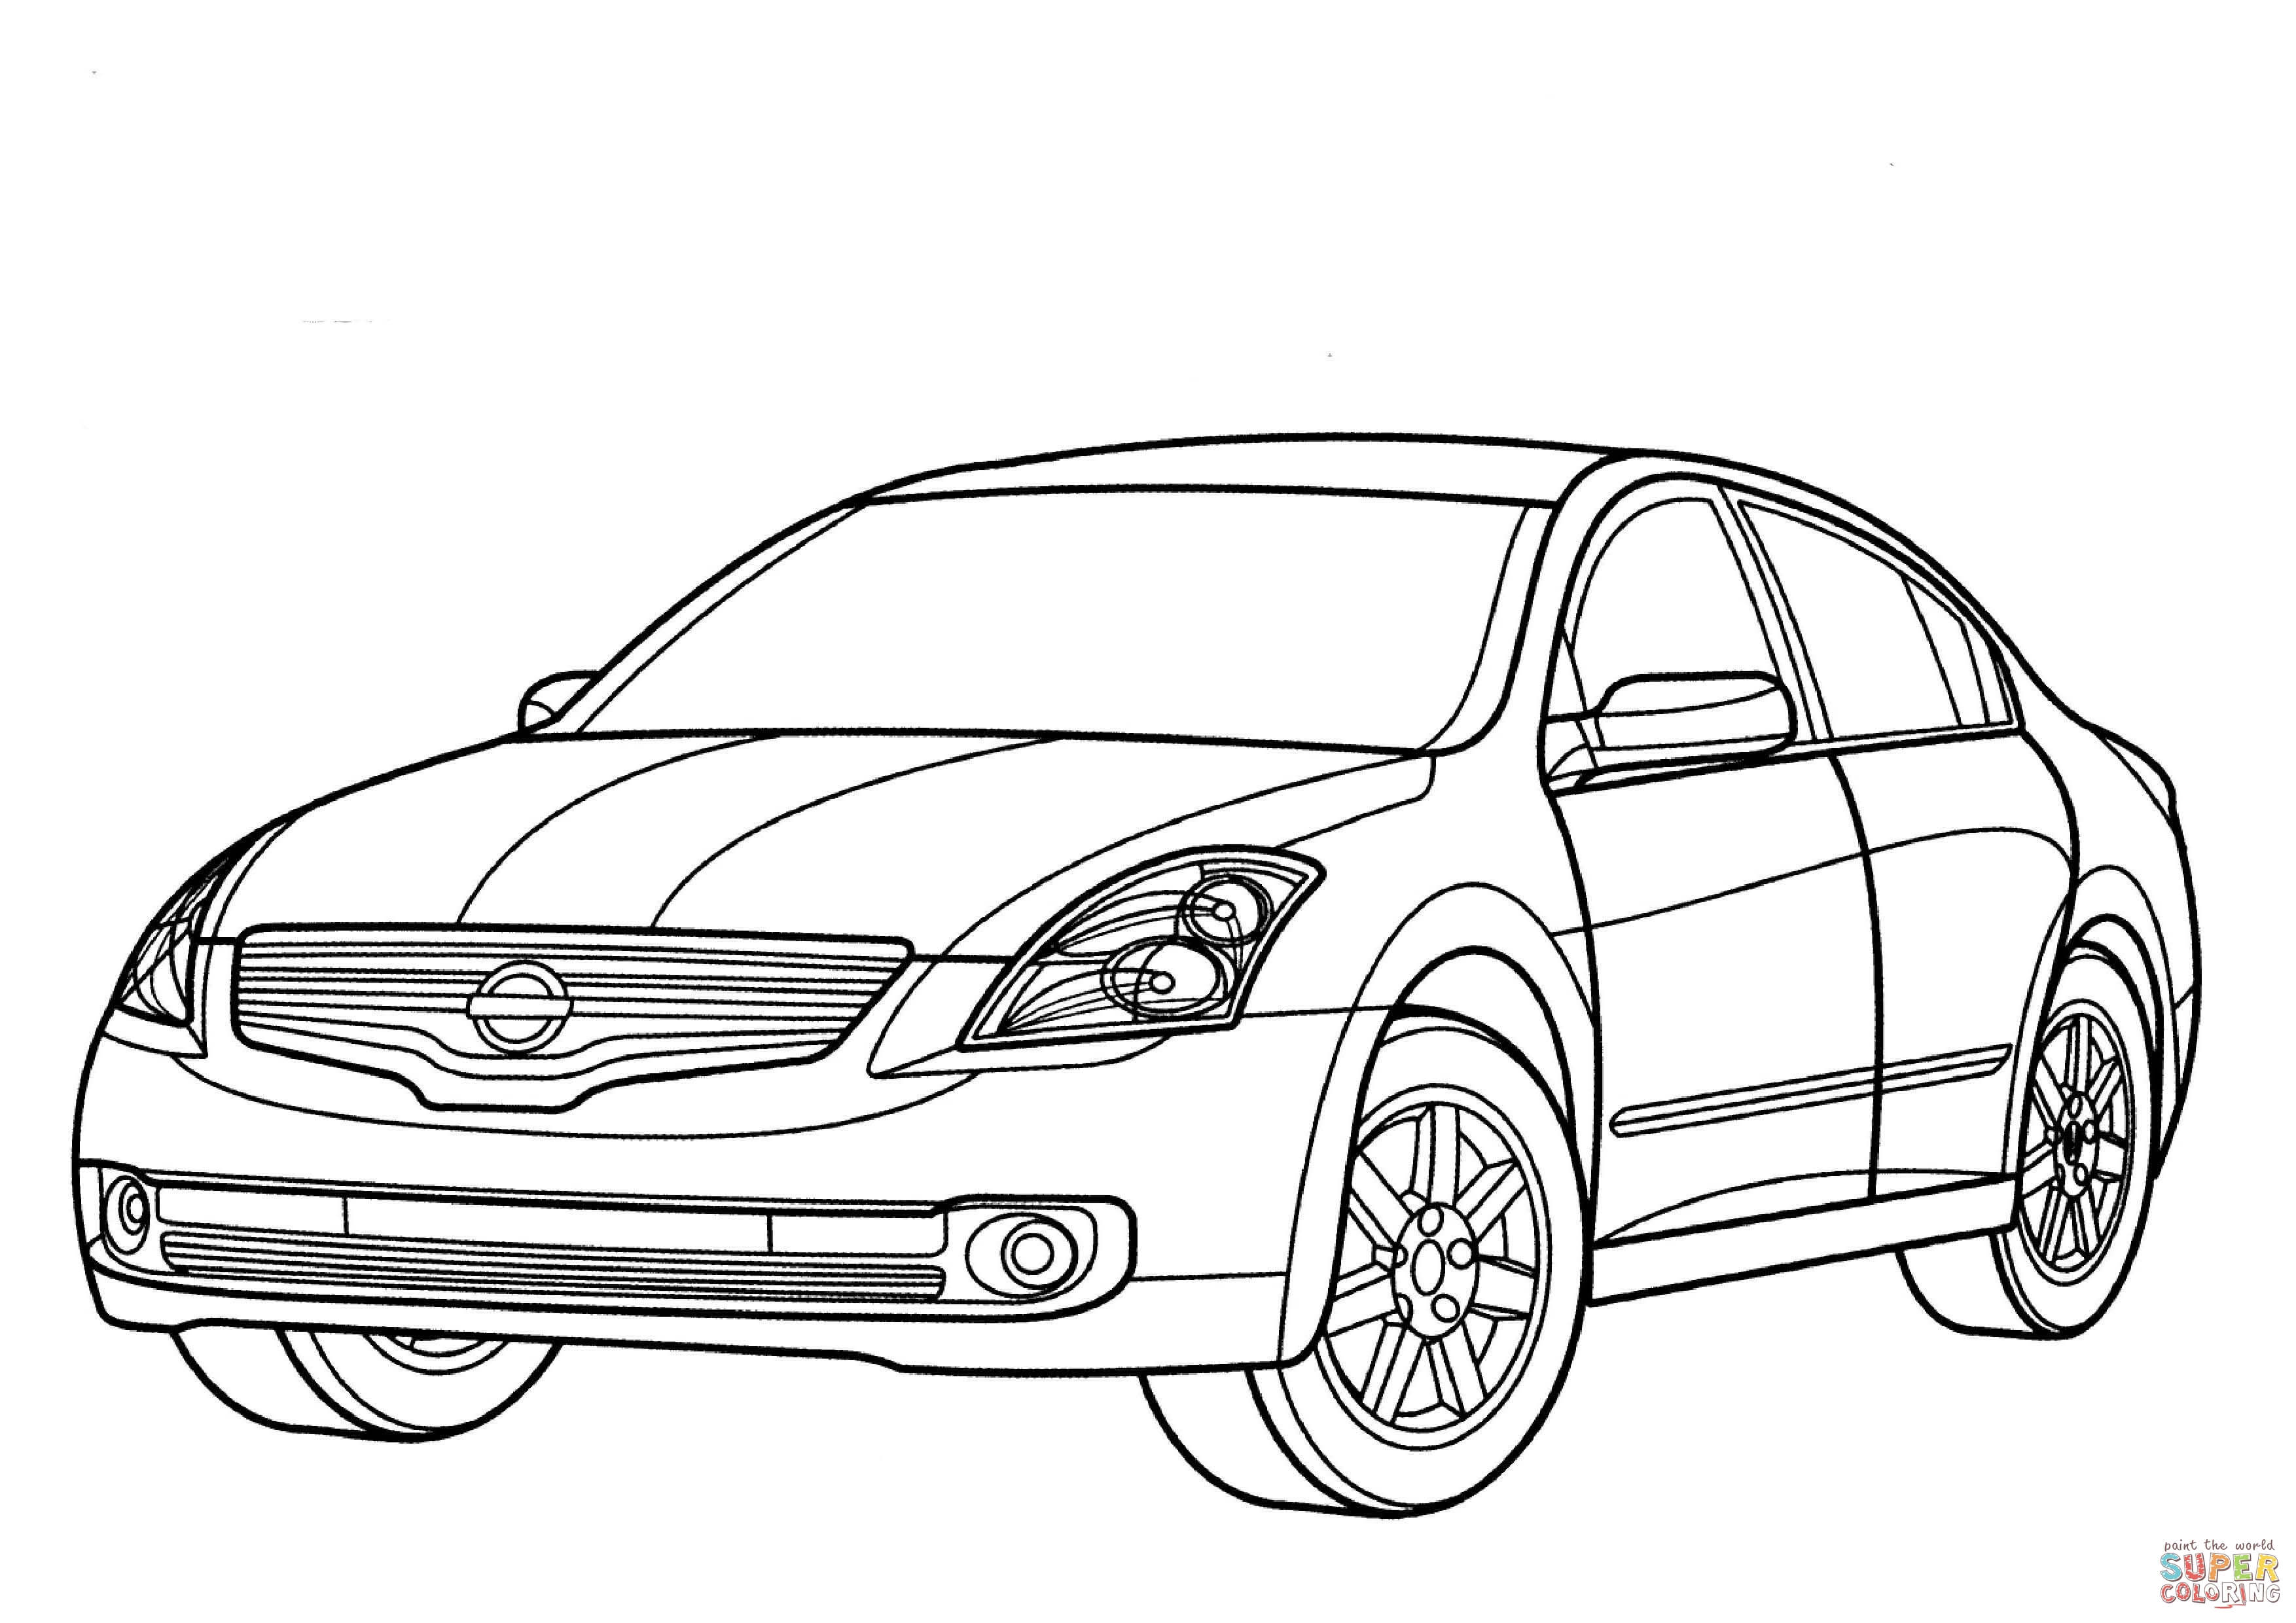 Nissan Car Coloring Pages.